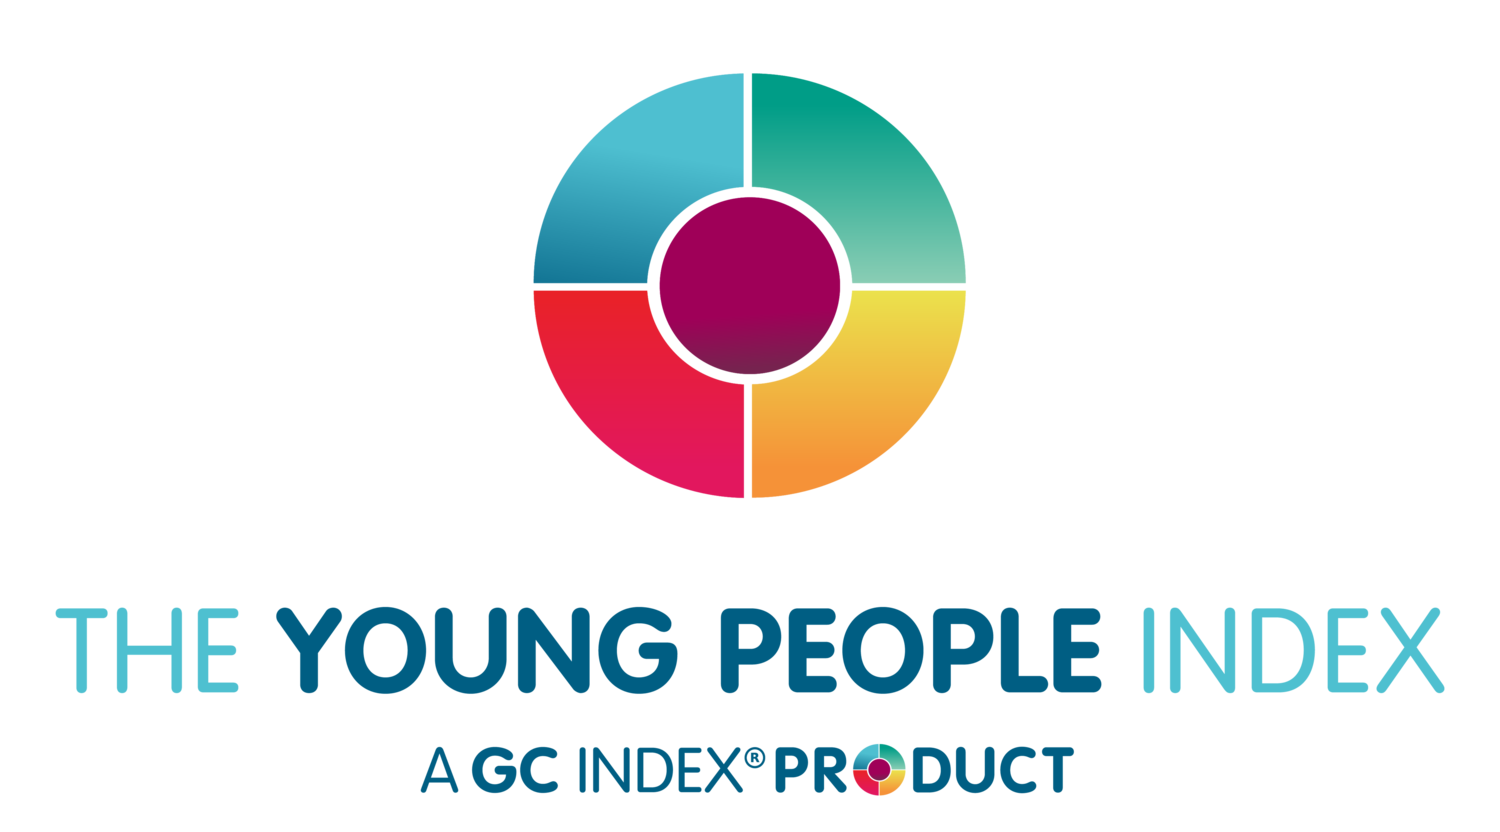 The Young People Index®